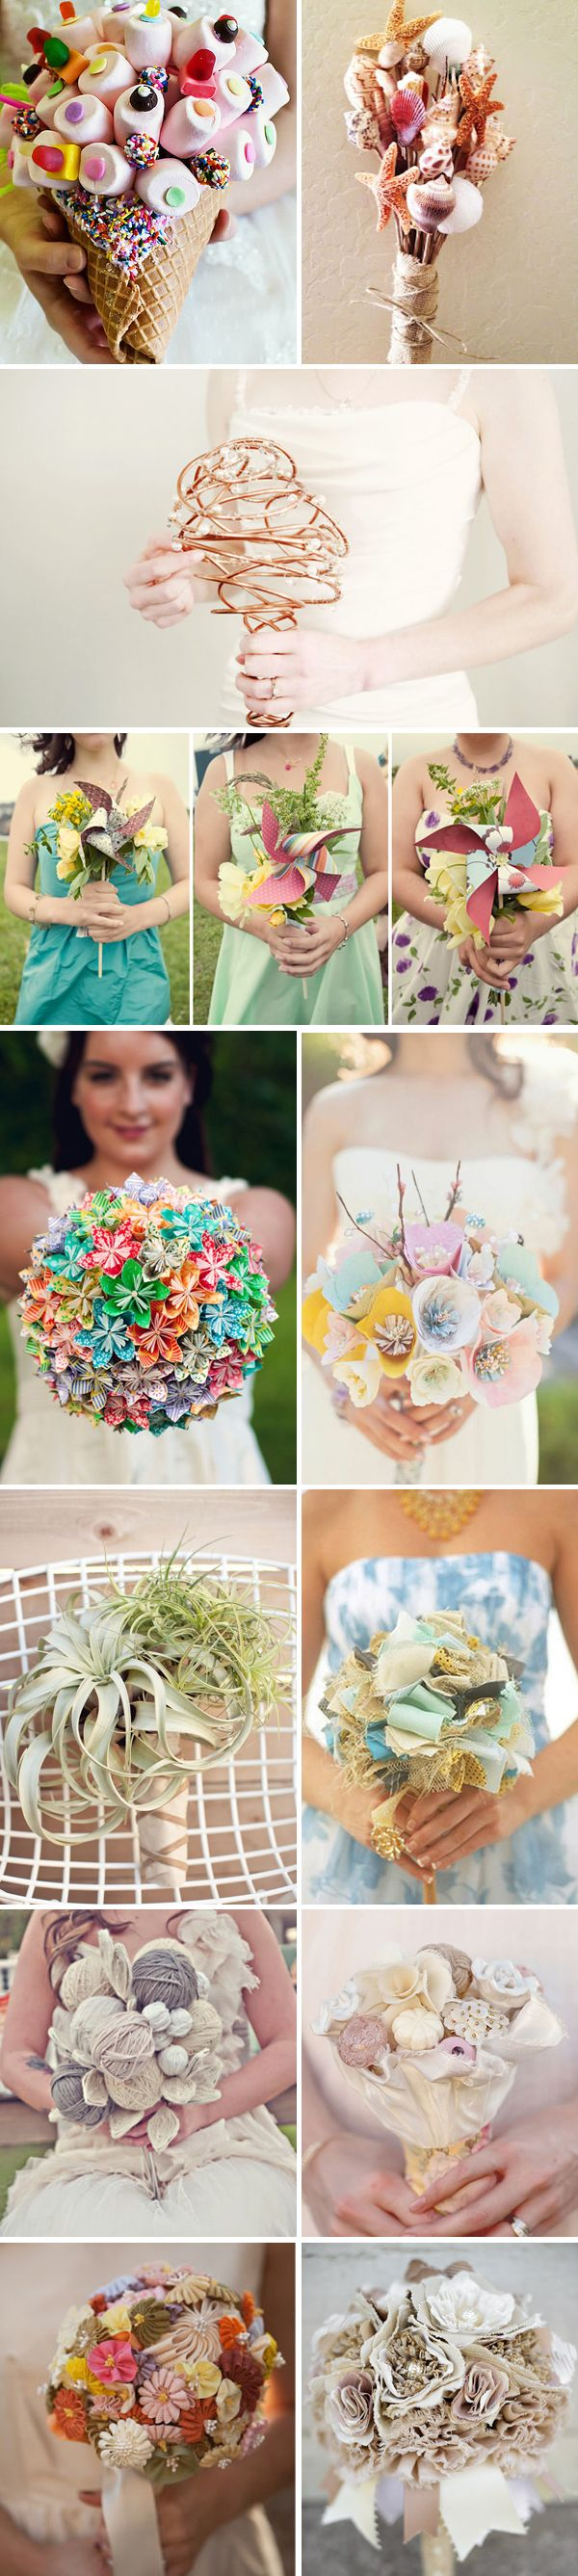 Wedding bouquets not flowers  Beautiful Wedding Flower Bouquets With Shoes To Match  Butterfly